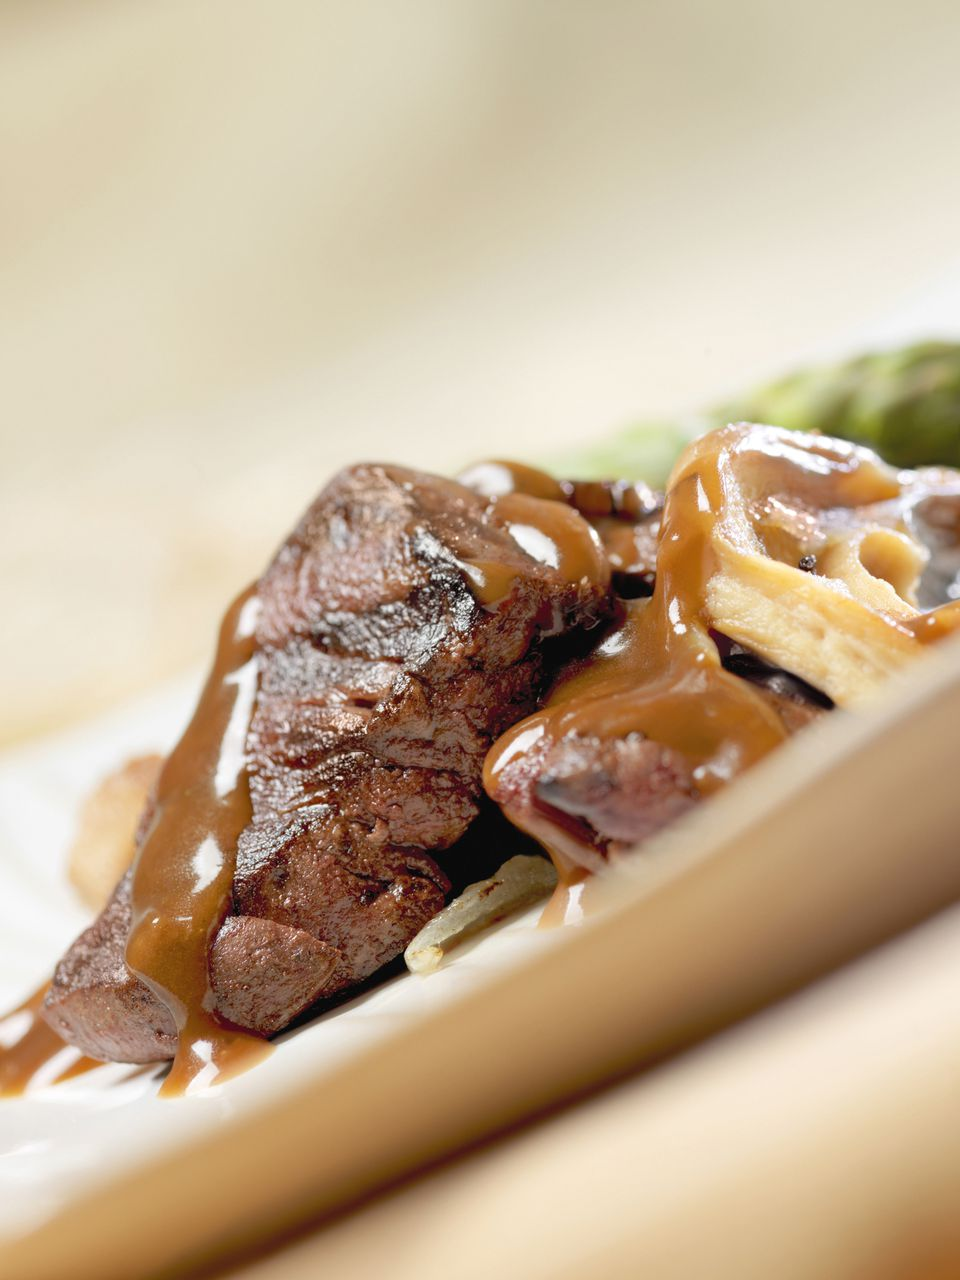 venison steak with mushrooms